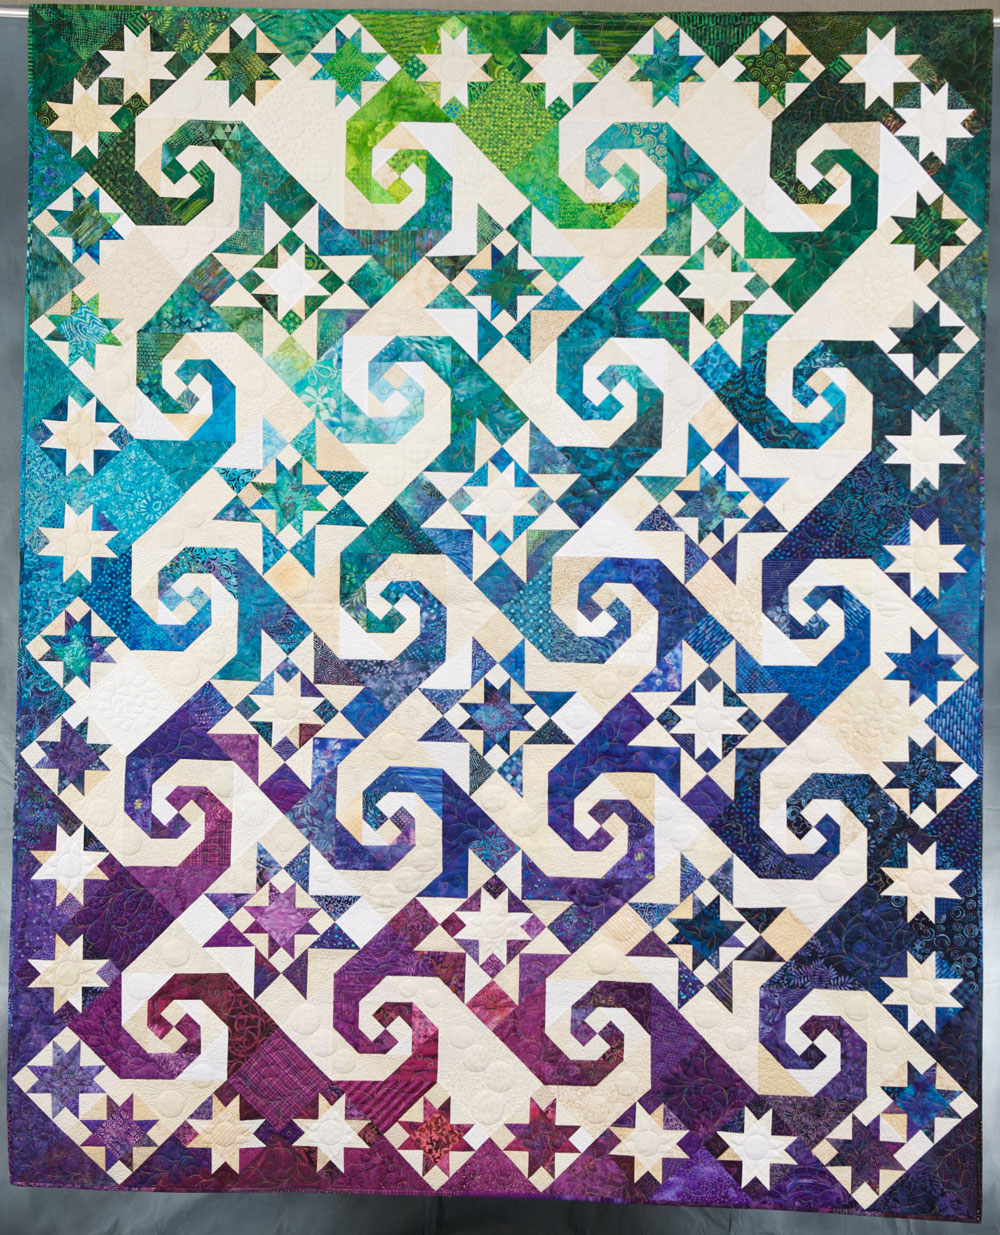 Quilt Inspiration Straight Piecing Patterns That Appear Curved